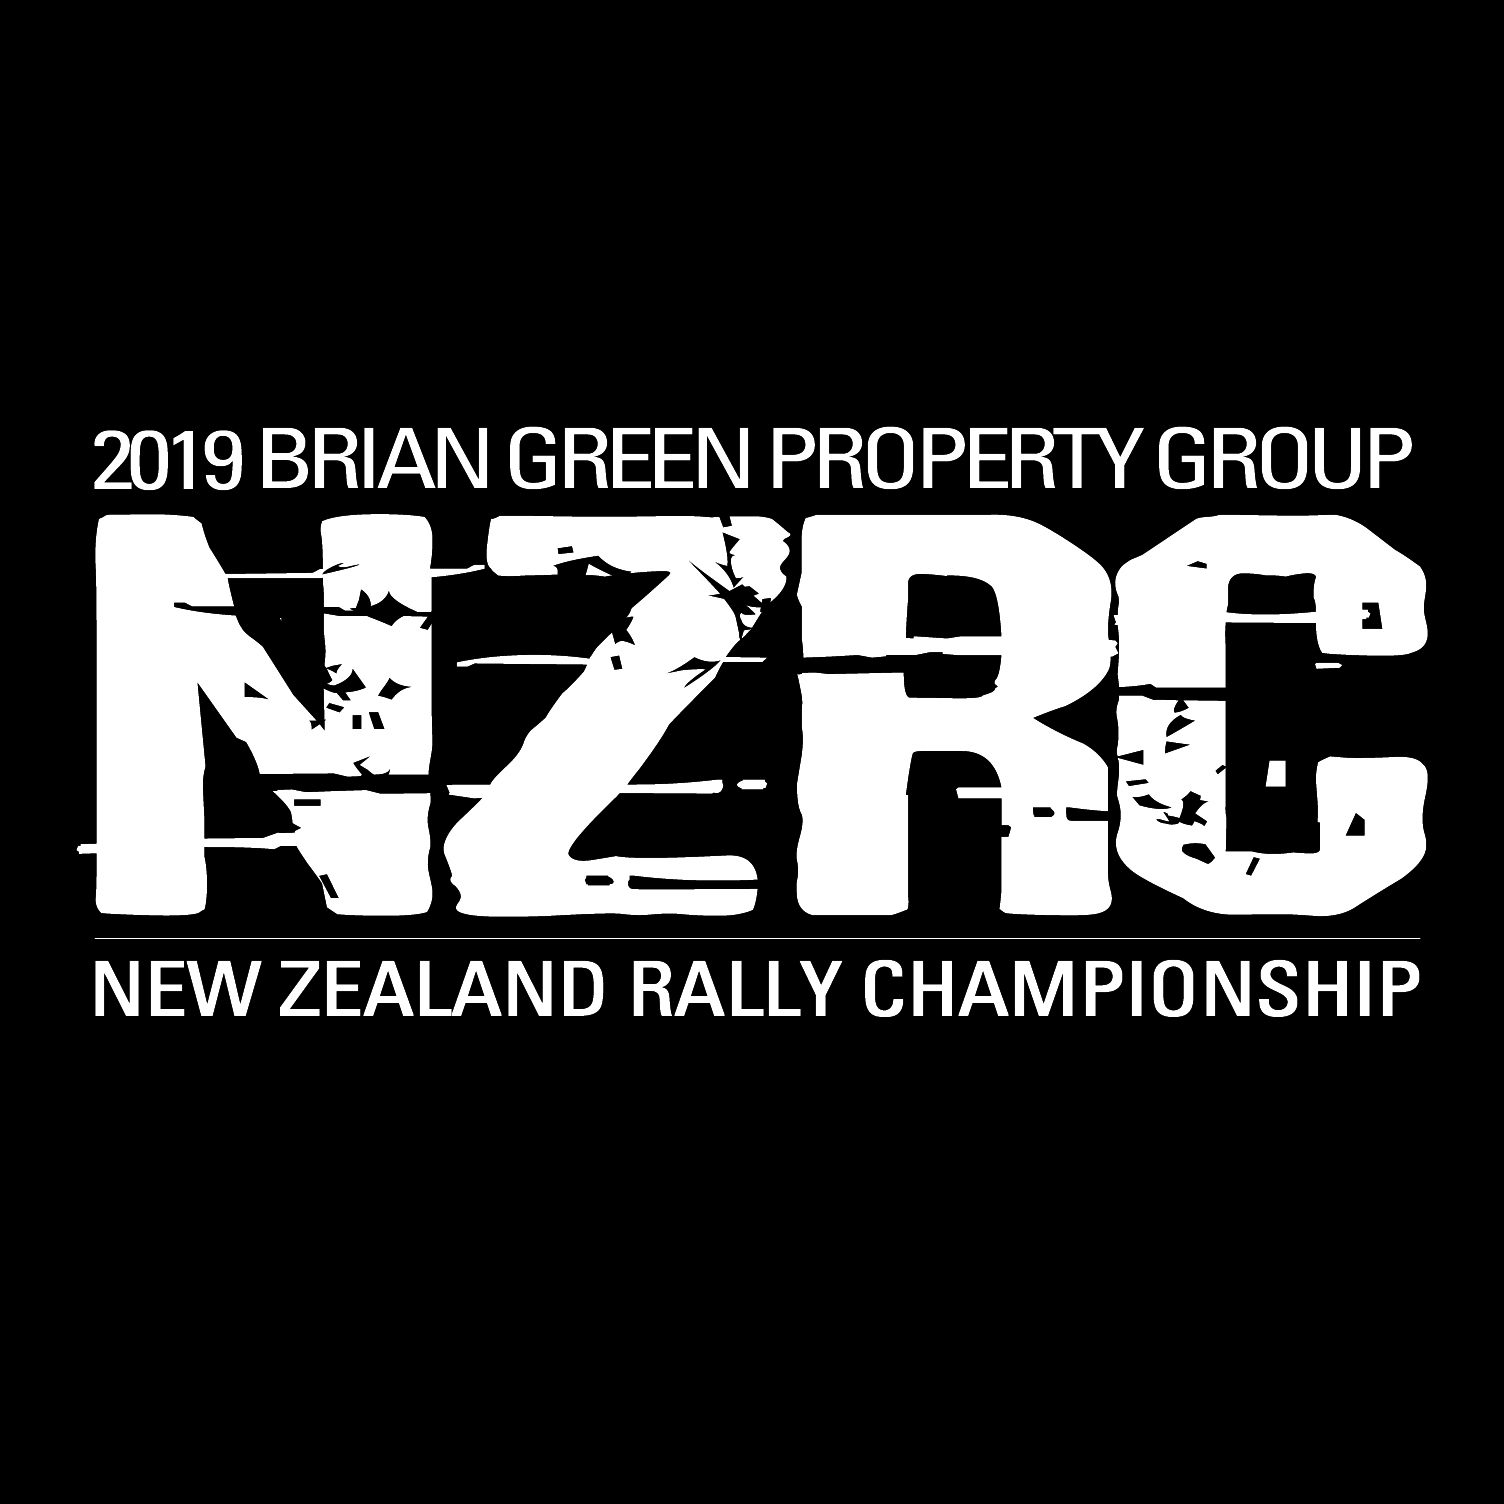 Alexander recovering from massive crash | :: Brian Green Property Group New Zealand Rally Championship ::